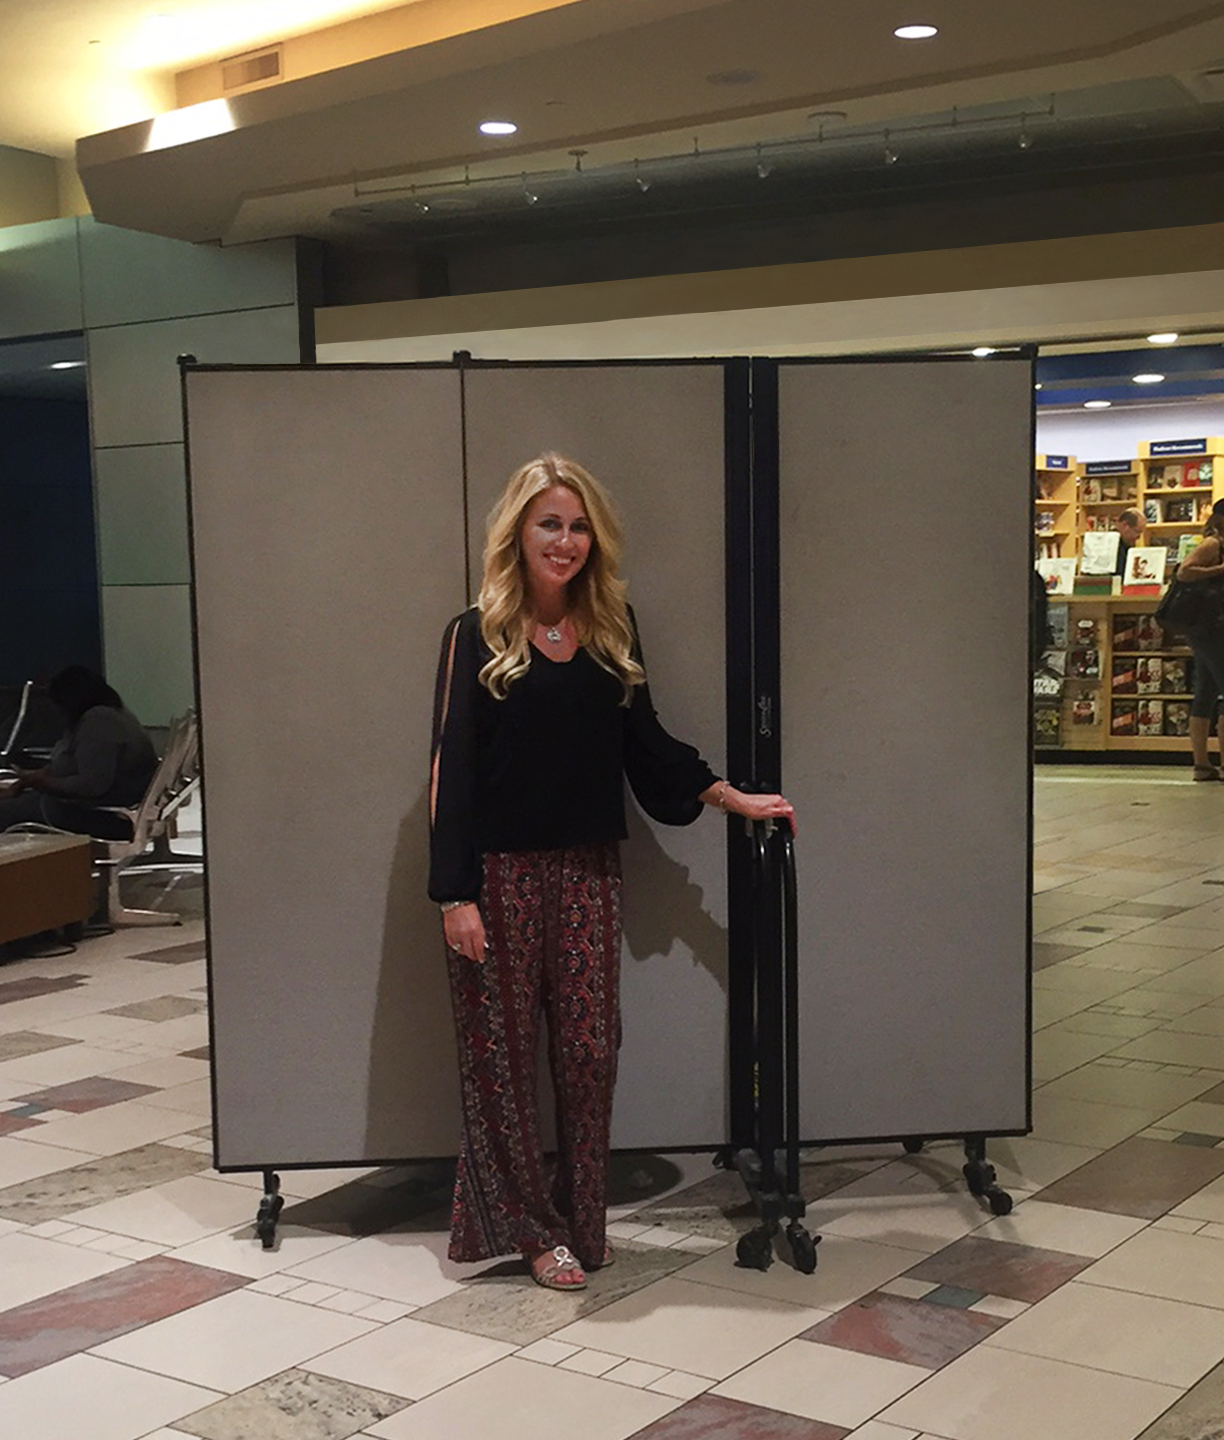 A woman stands in front of a portable wall on wheels in an airport